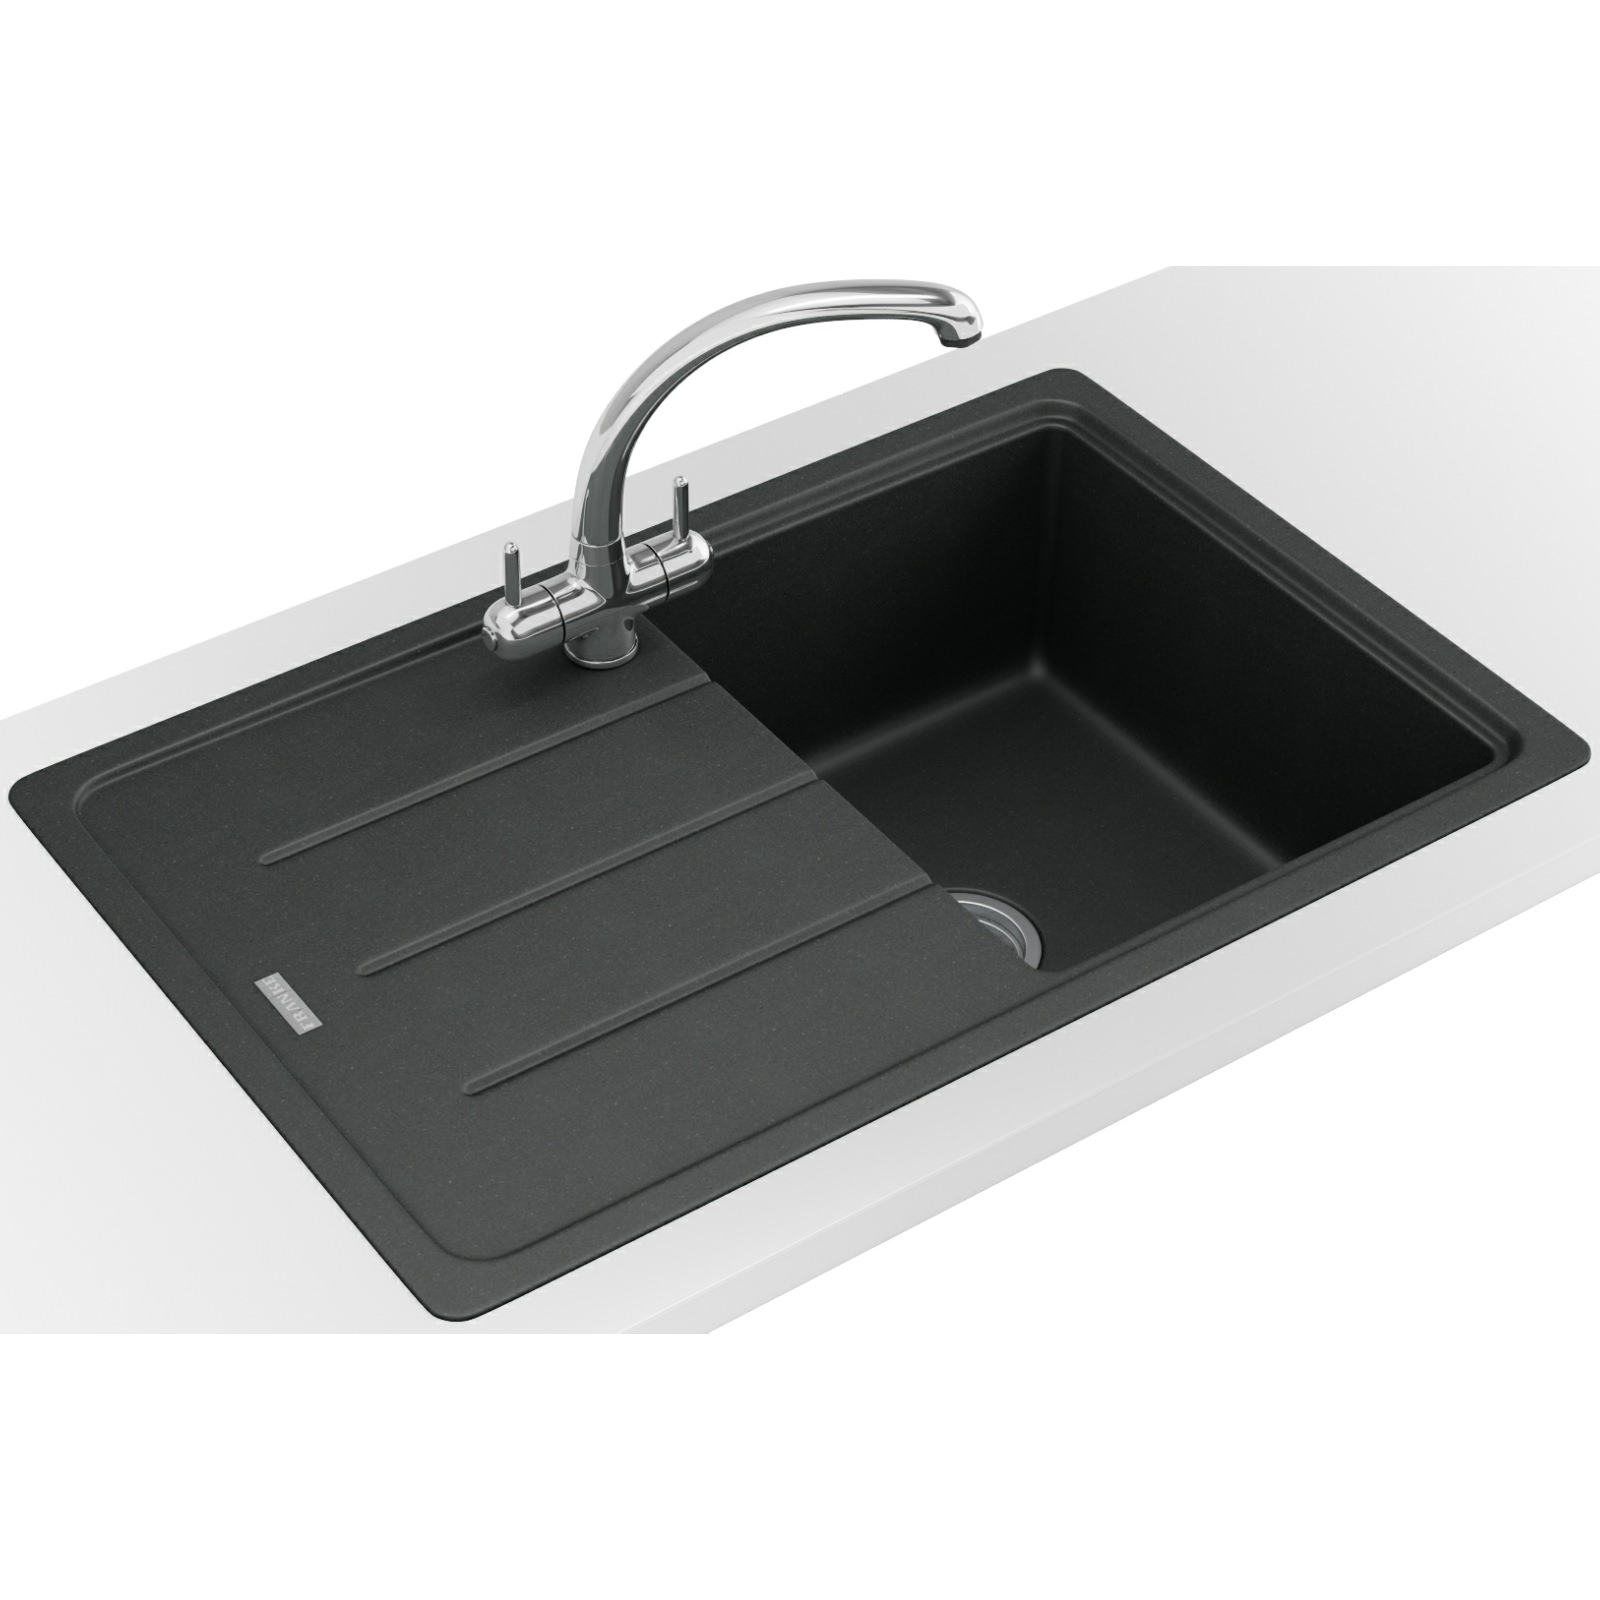 ... Franke Basis BFG 611-780 Fragranite Onyx 1.0 Bowl Kitchen Inset Sink